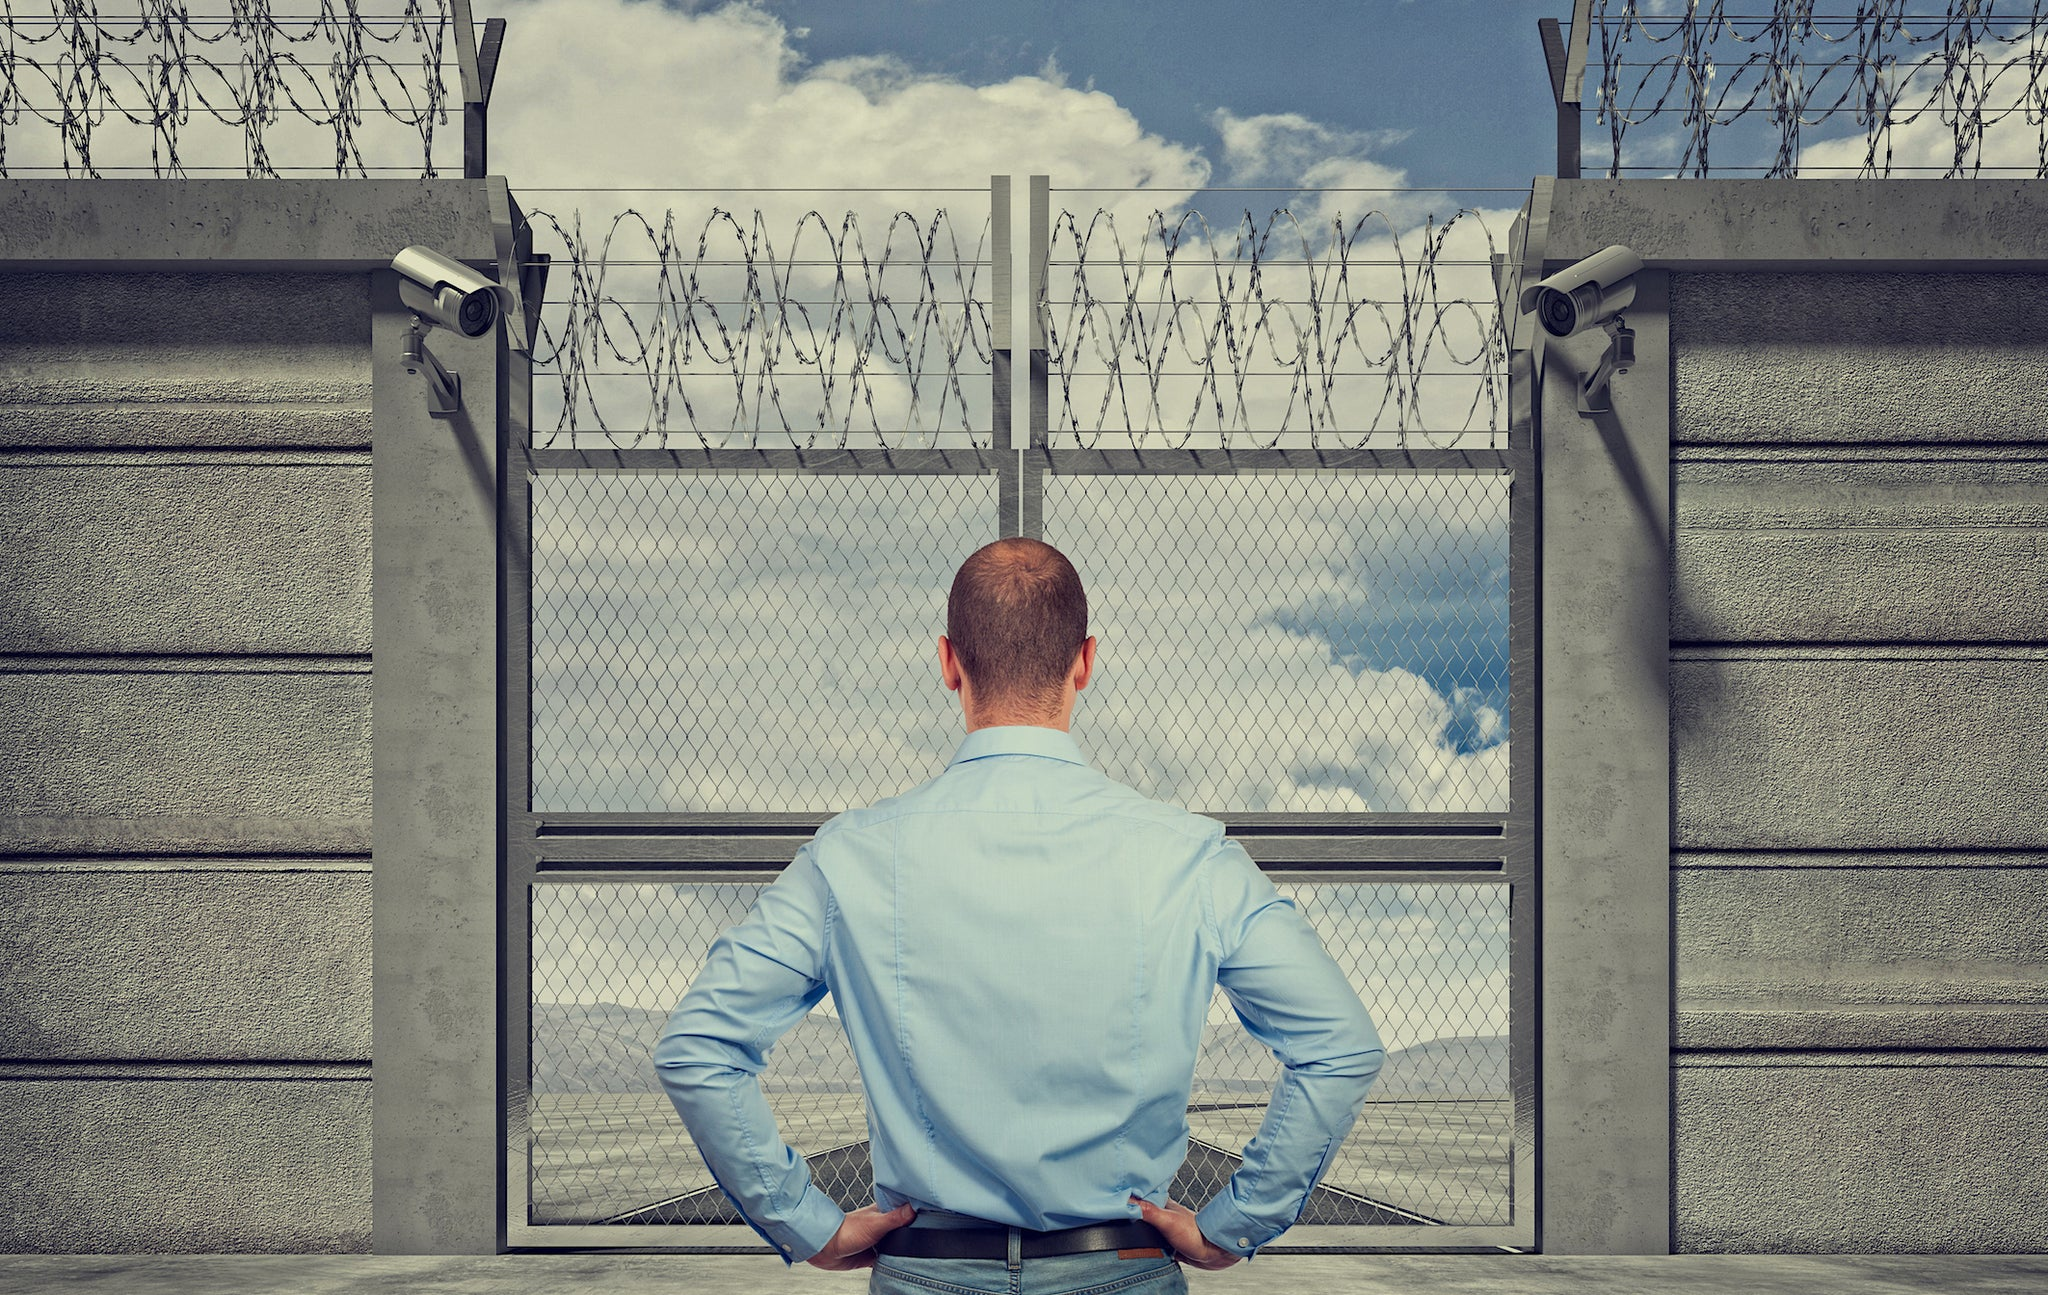 Don't Put Your eCommerce Customer Service Inside a Policy Prison